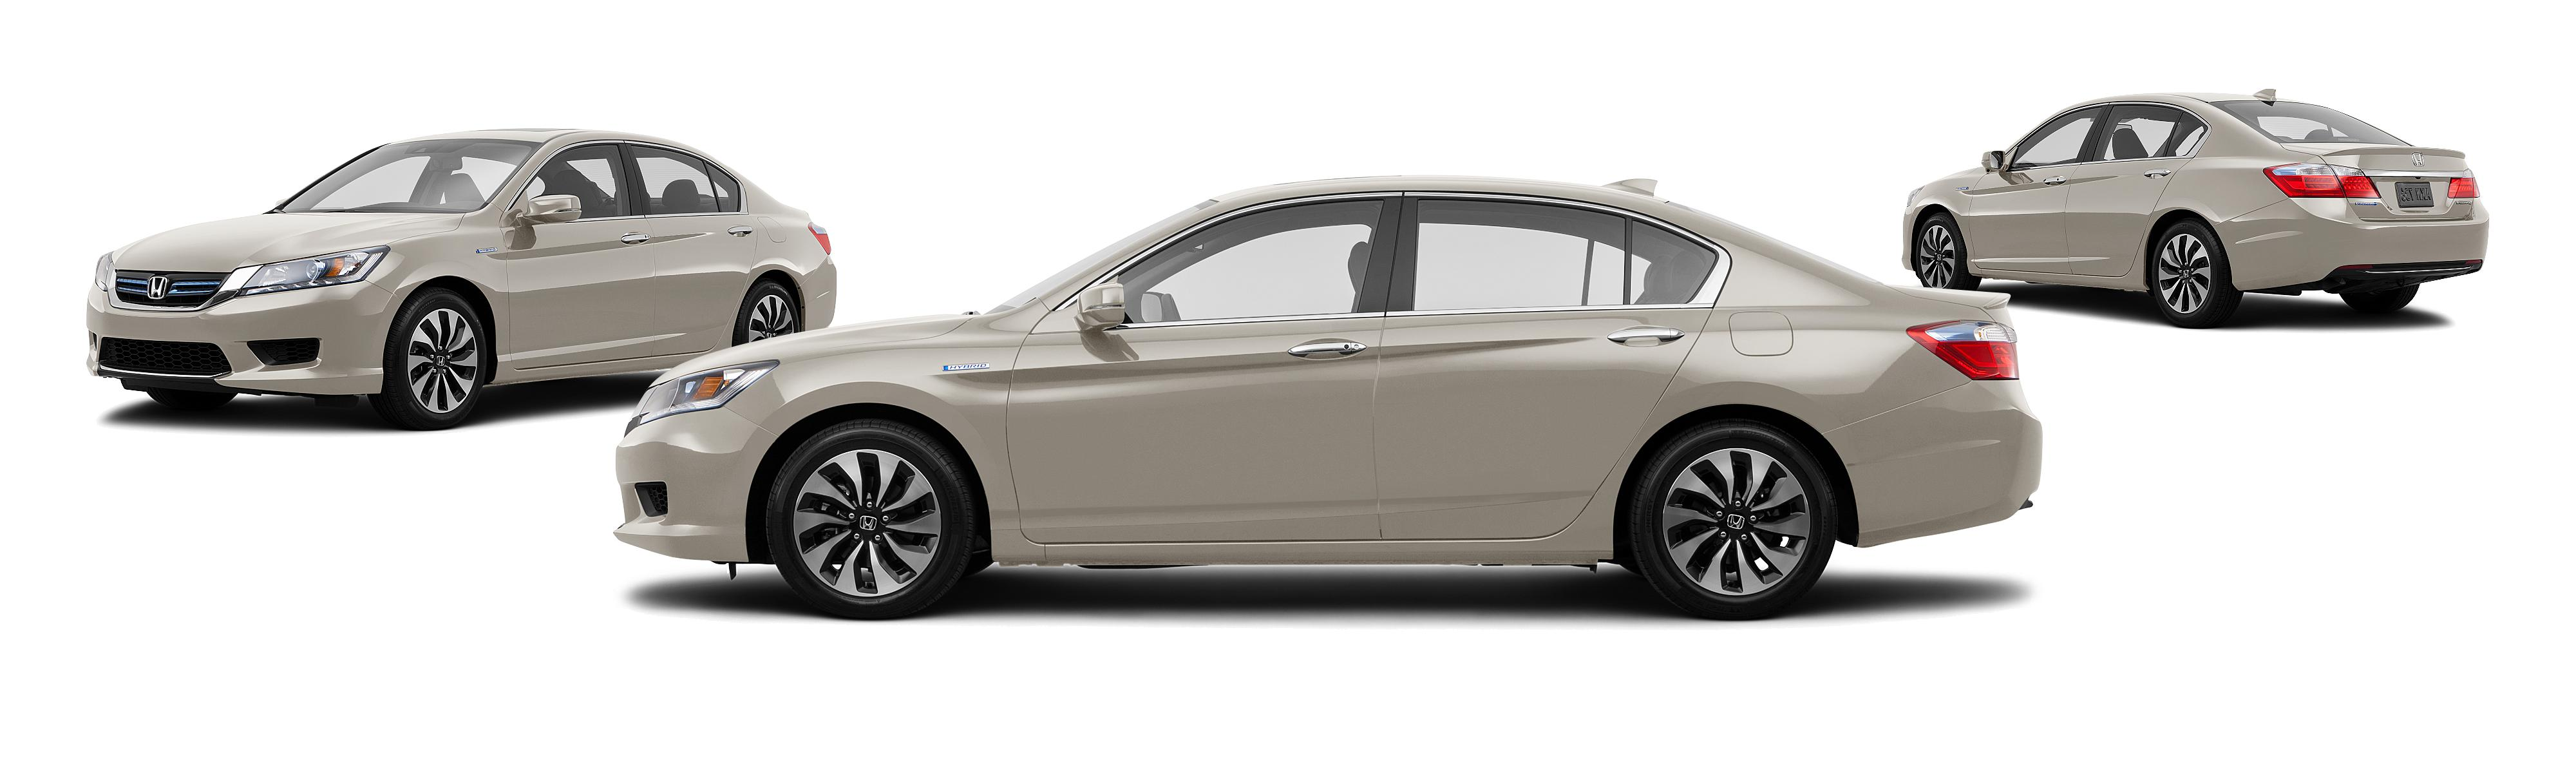 2014-honda-accord-hybrid-ex-l-4dr-sedan-champagne-frost-pearl-composite-large Interesting Info About 2013 Honda Accord Exl with Terrific Pictures Cars Review